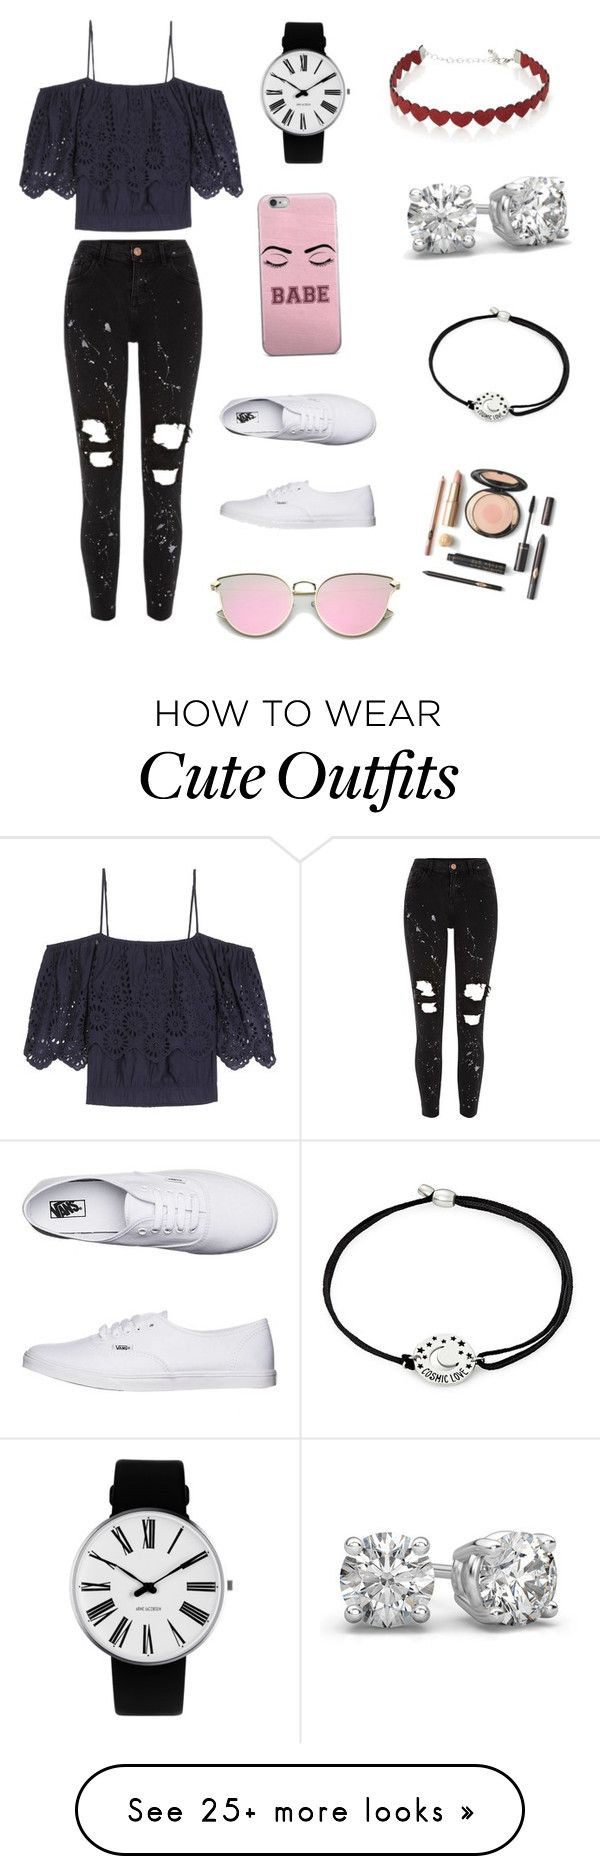 """Cute casual Outfit ☺️"" by lsantana13 on Polyvore featuring Ganni, River Island, Vans, Simons, Alex and Ani and Rosendahl"